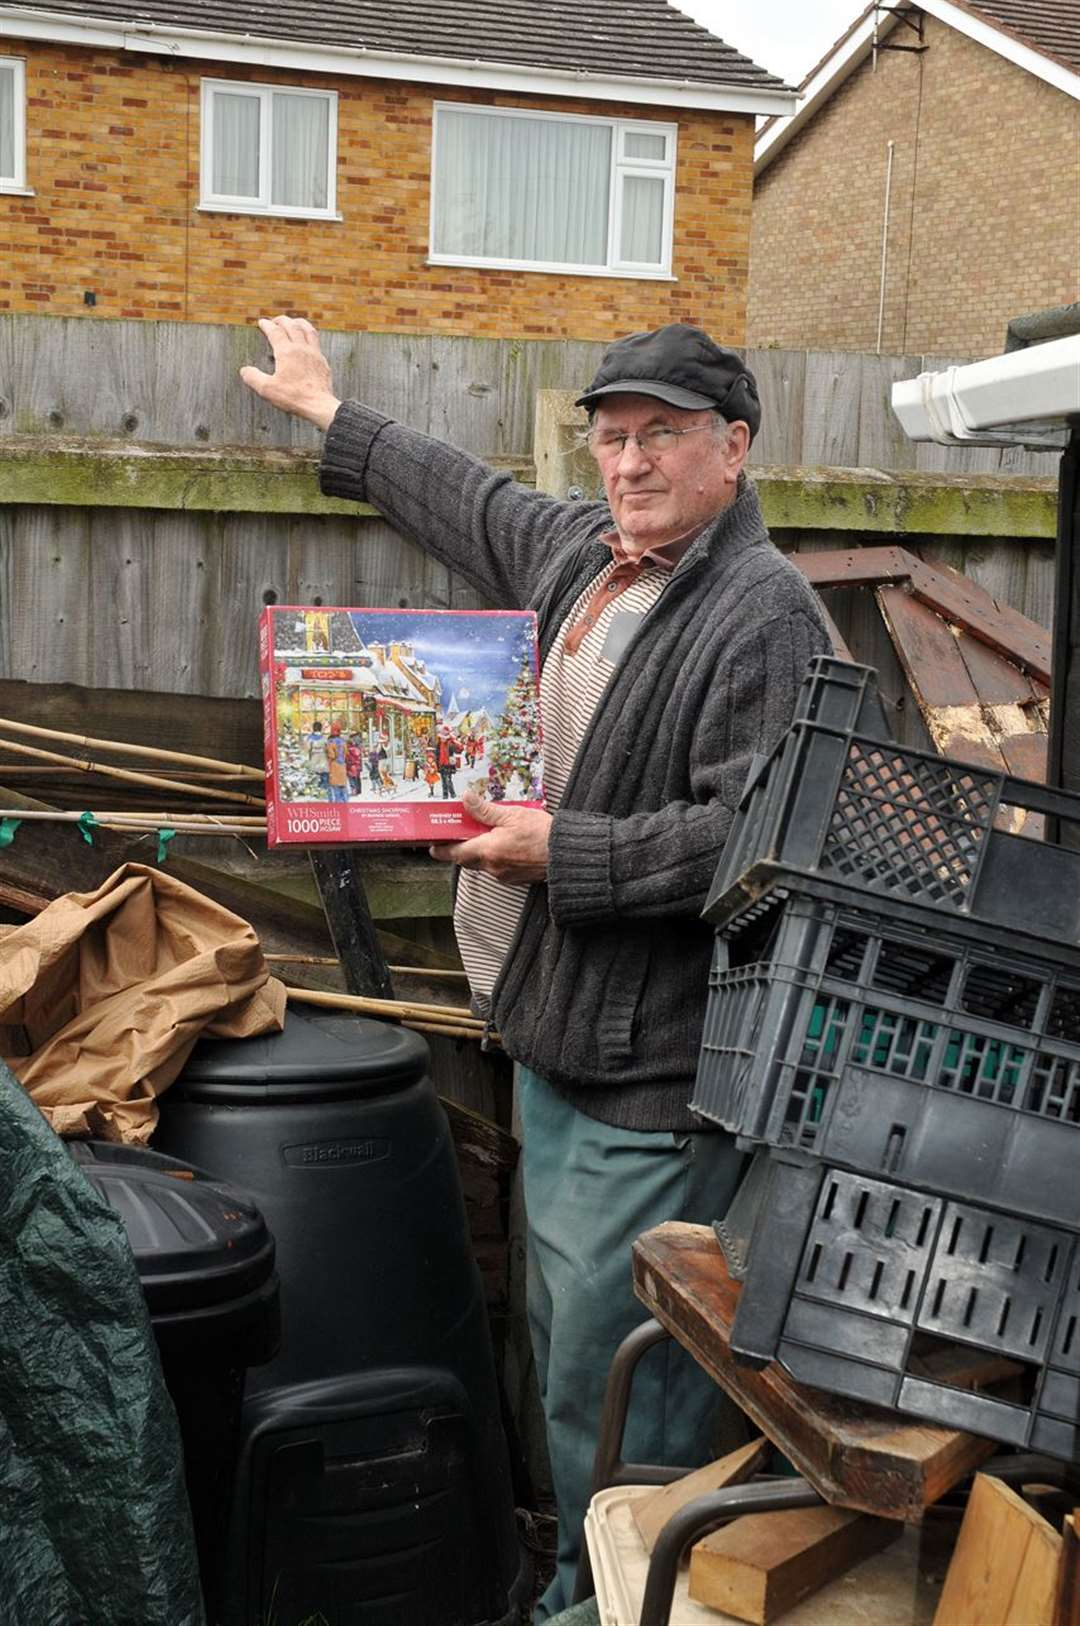 Air ambulance fundraiser Les Ward pictured in April when thieves went through bric-a-brac in his garden